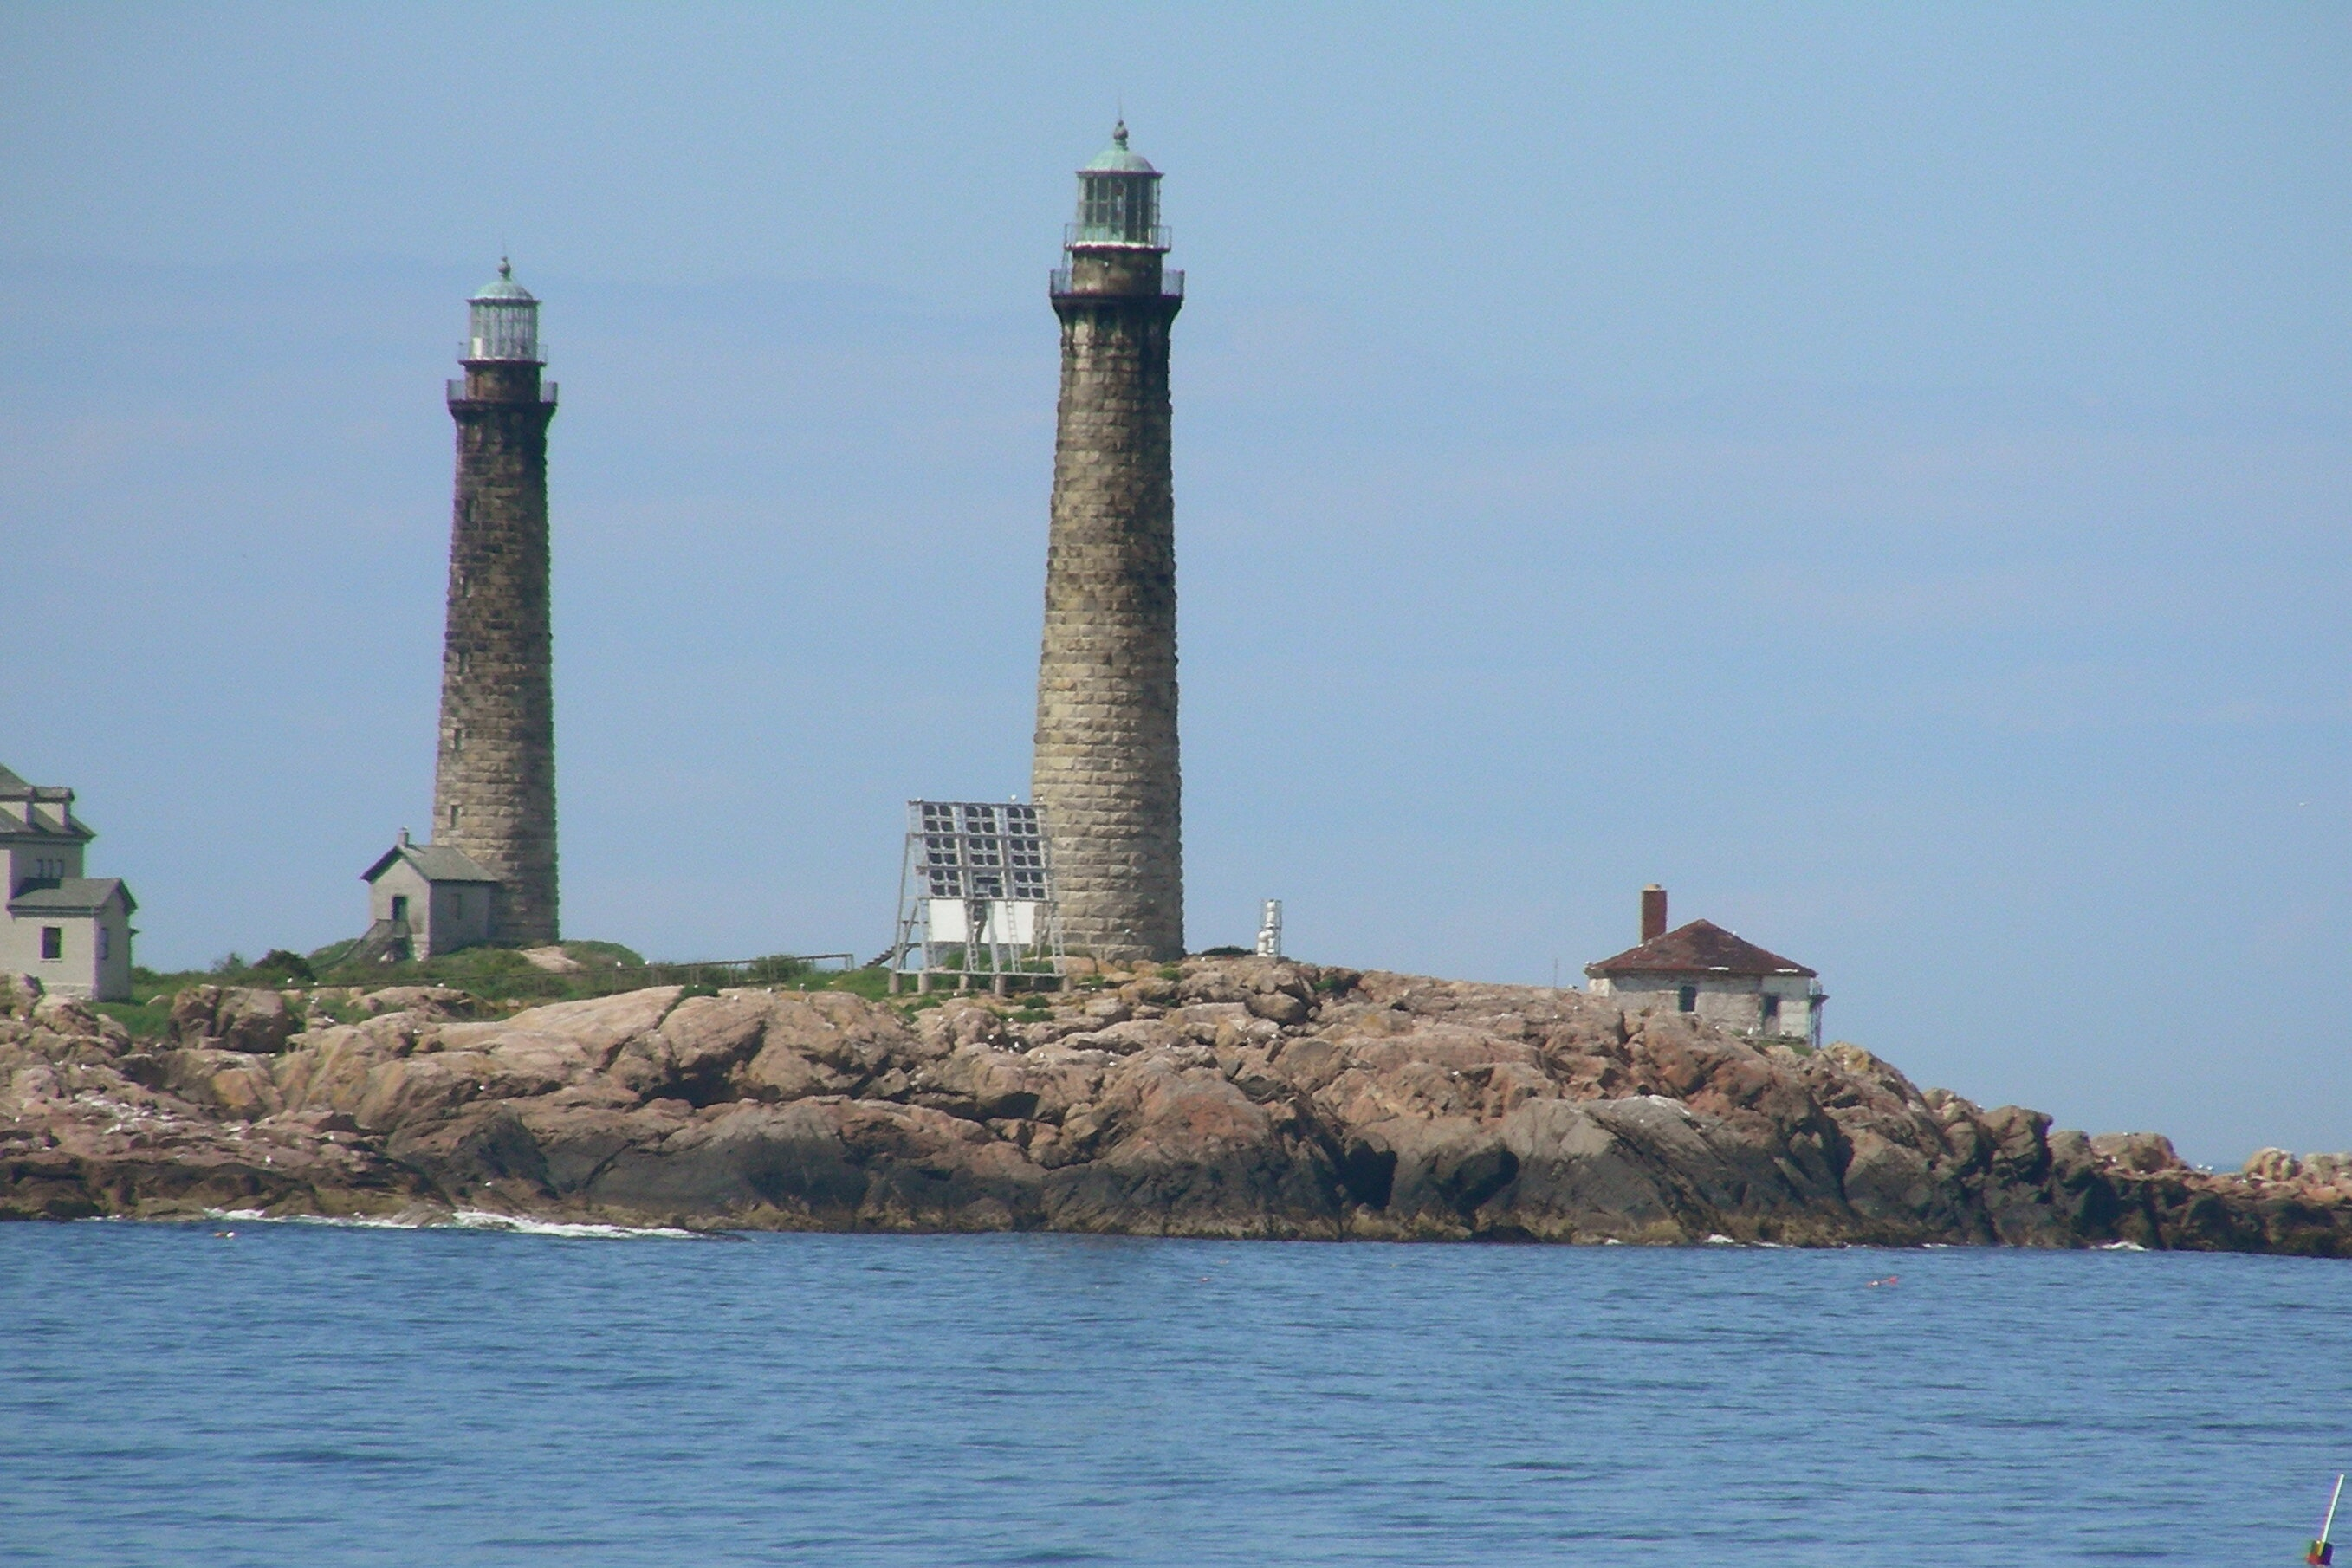 The Cape Ann Light Station